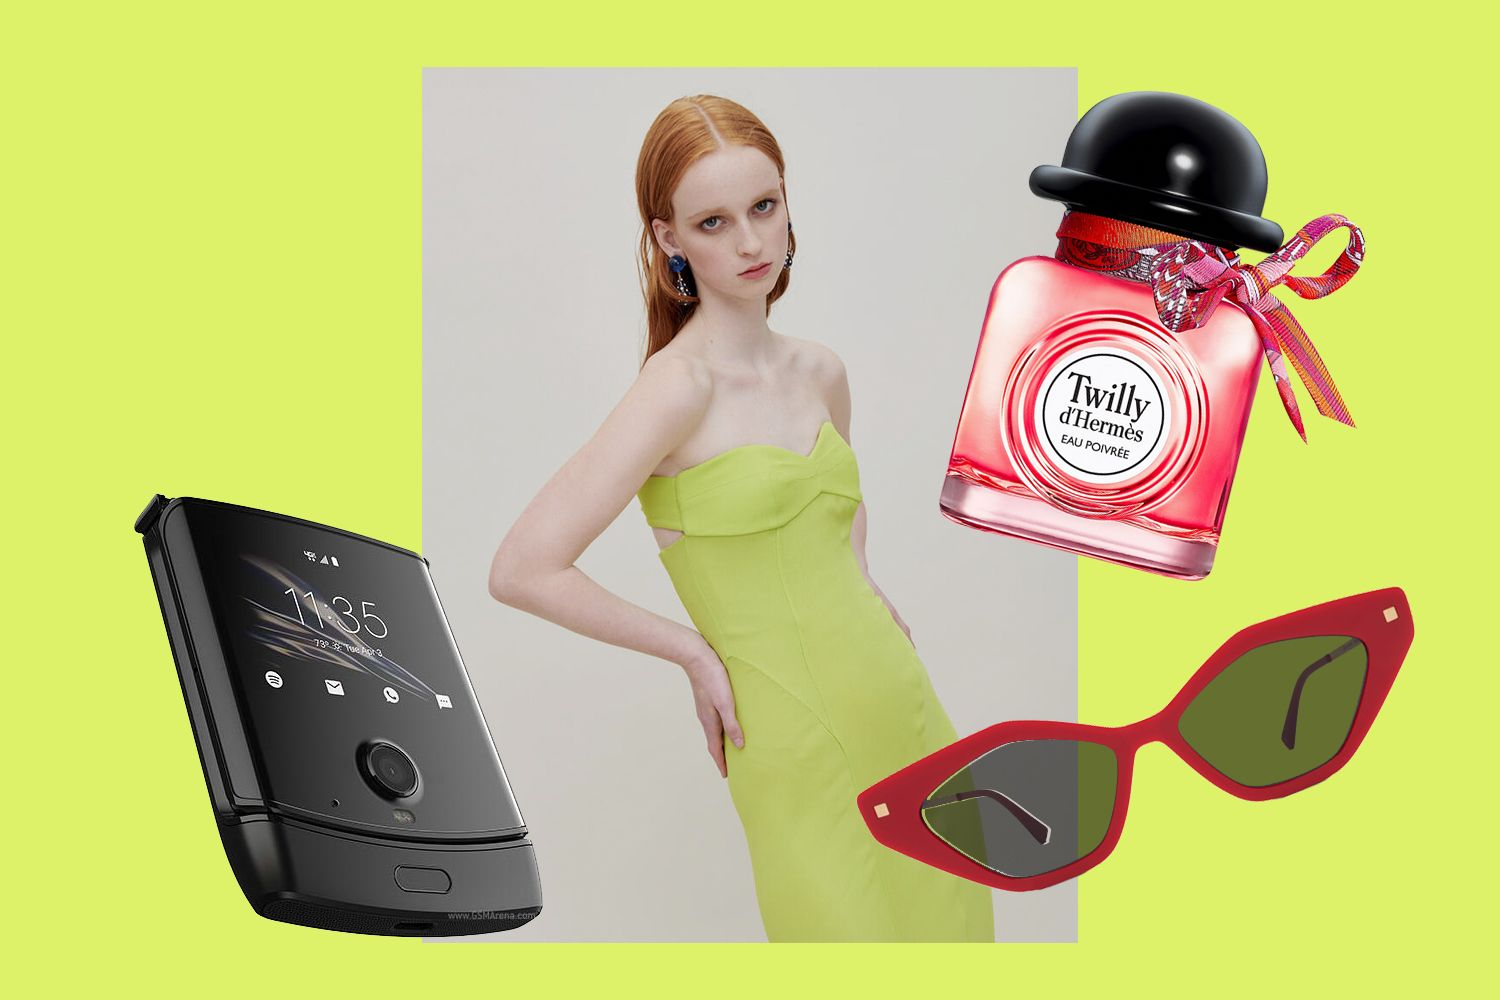 Editor's Picks: Flip Phones, German Eyewear And Something Chartreuse